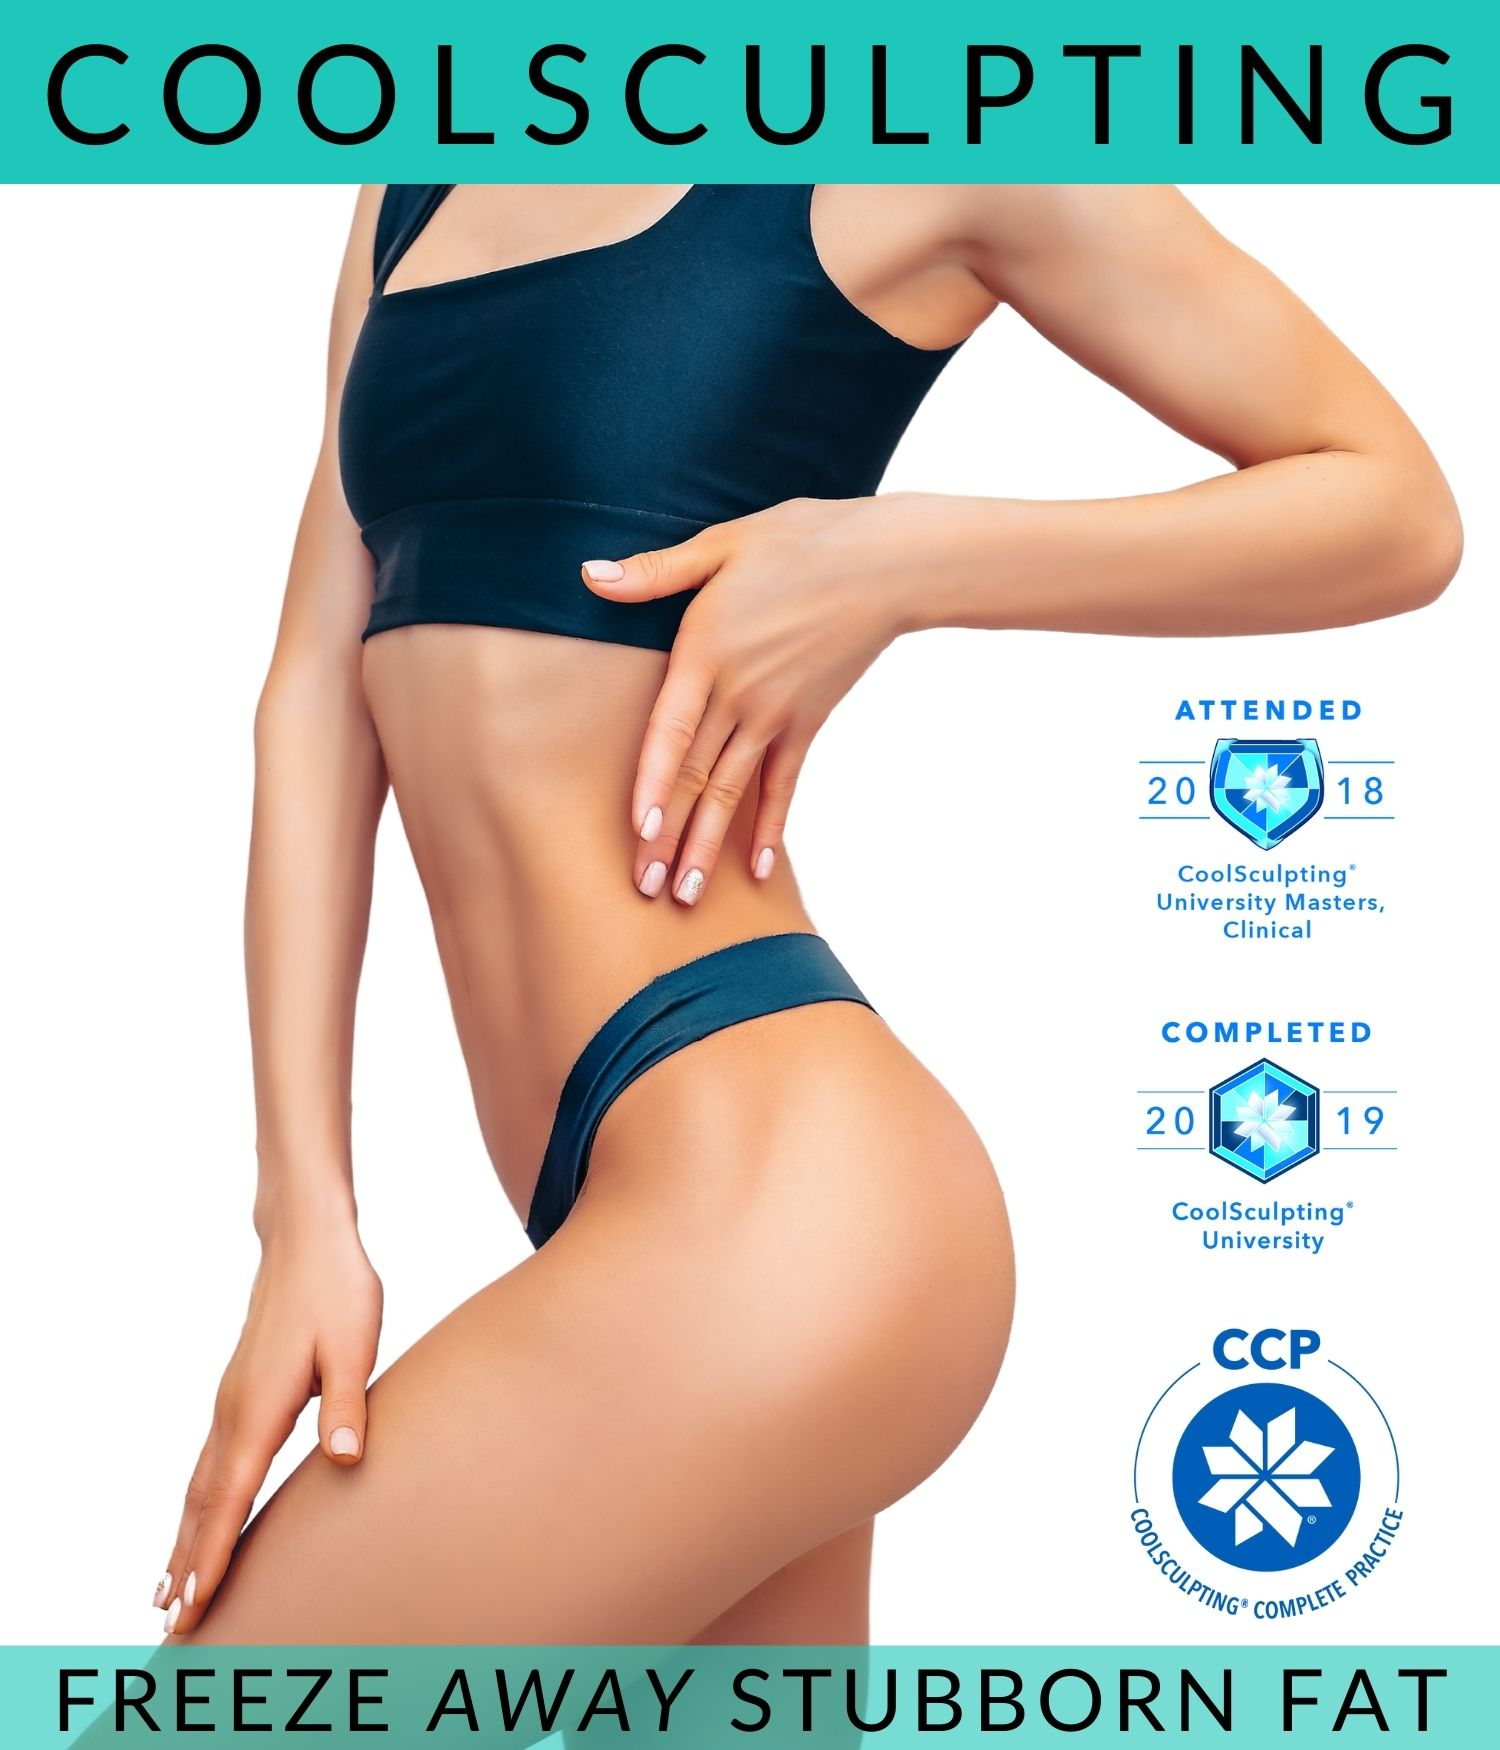 beautiful and fit body promoting CoolSculpting treatment